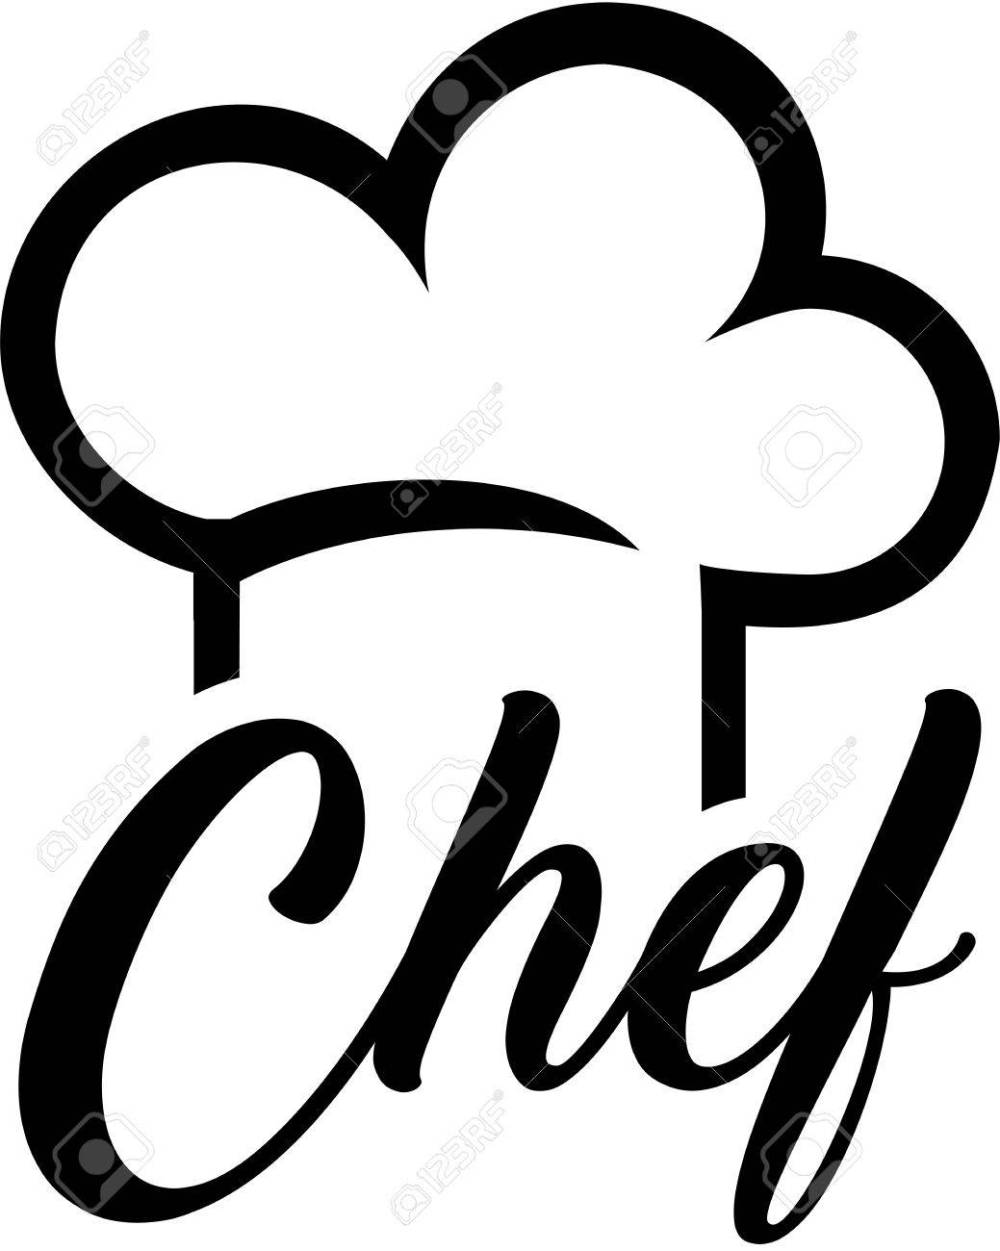 medium resolution of chef hat with chef word stock vector 81569190